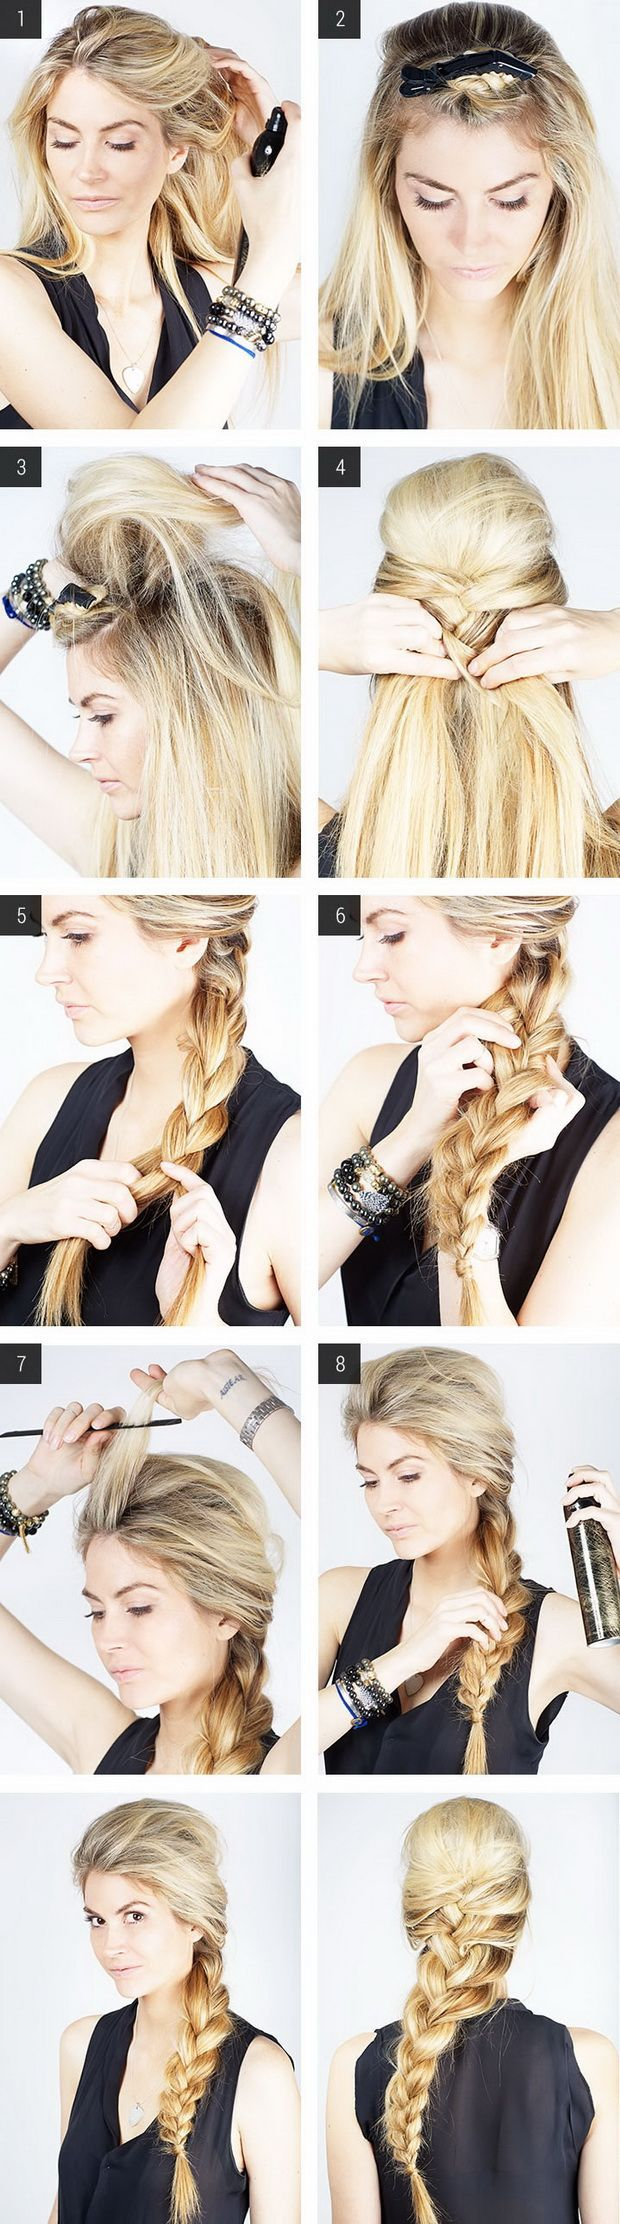 How to Do A Messy French Braid | How to braid hair, braided hairstyles, and braids styles at You're So Pretty | #youresopretty | youresopretty.com